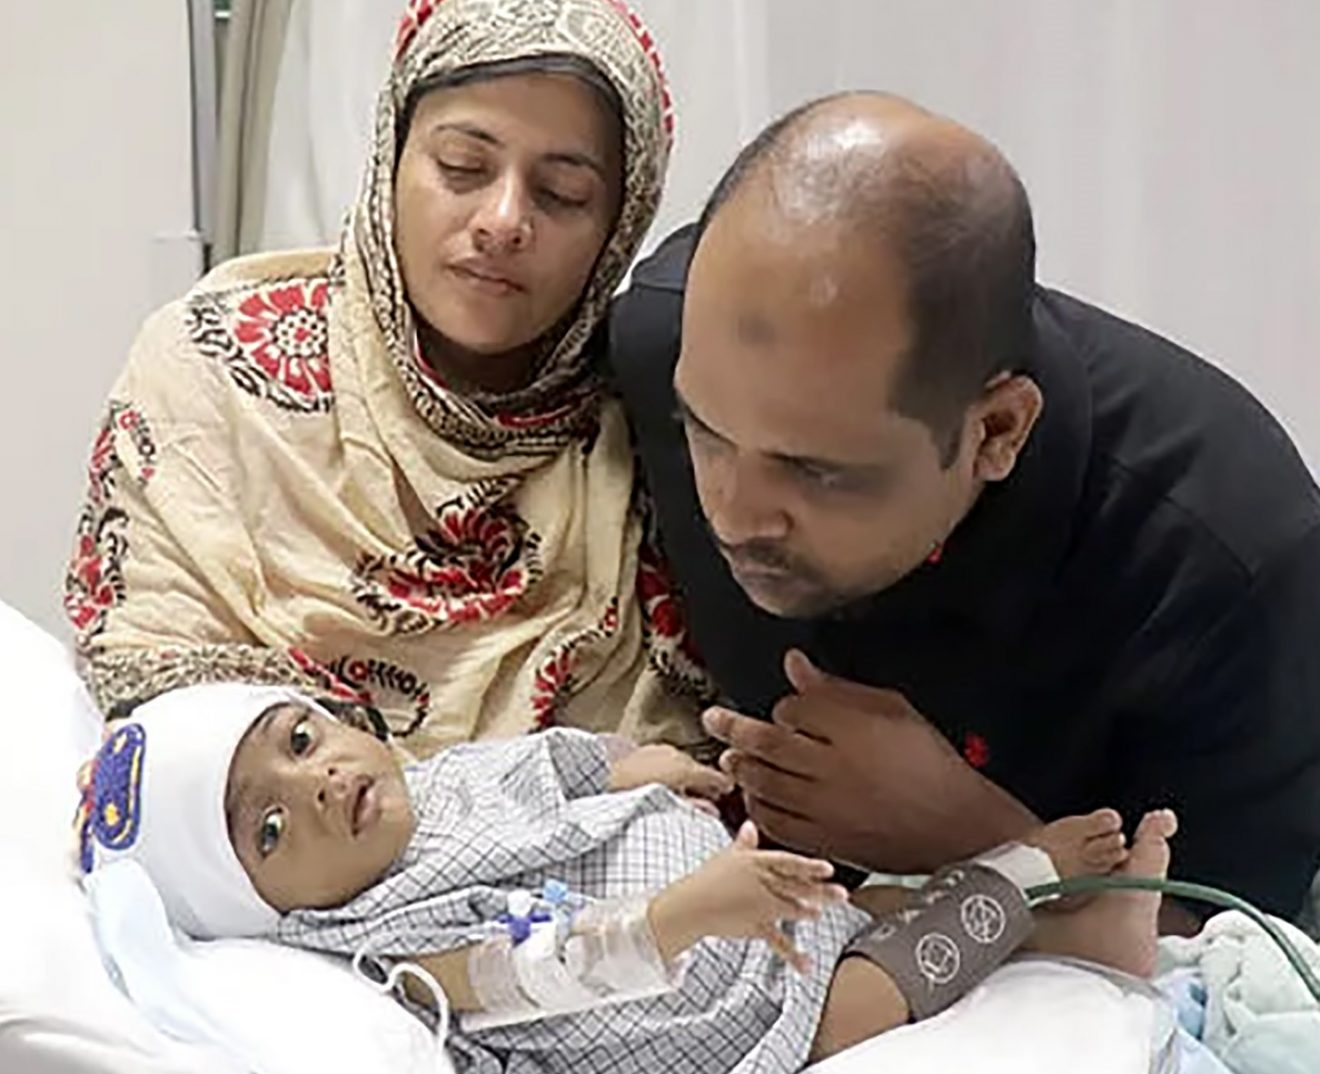 7-month old baby Abdullah suffering from Biliary Atresia breathes into a new life